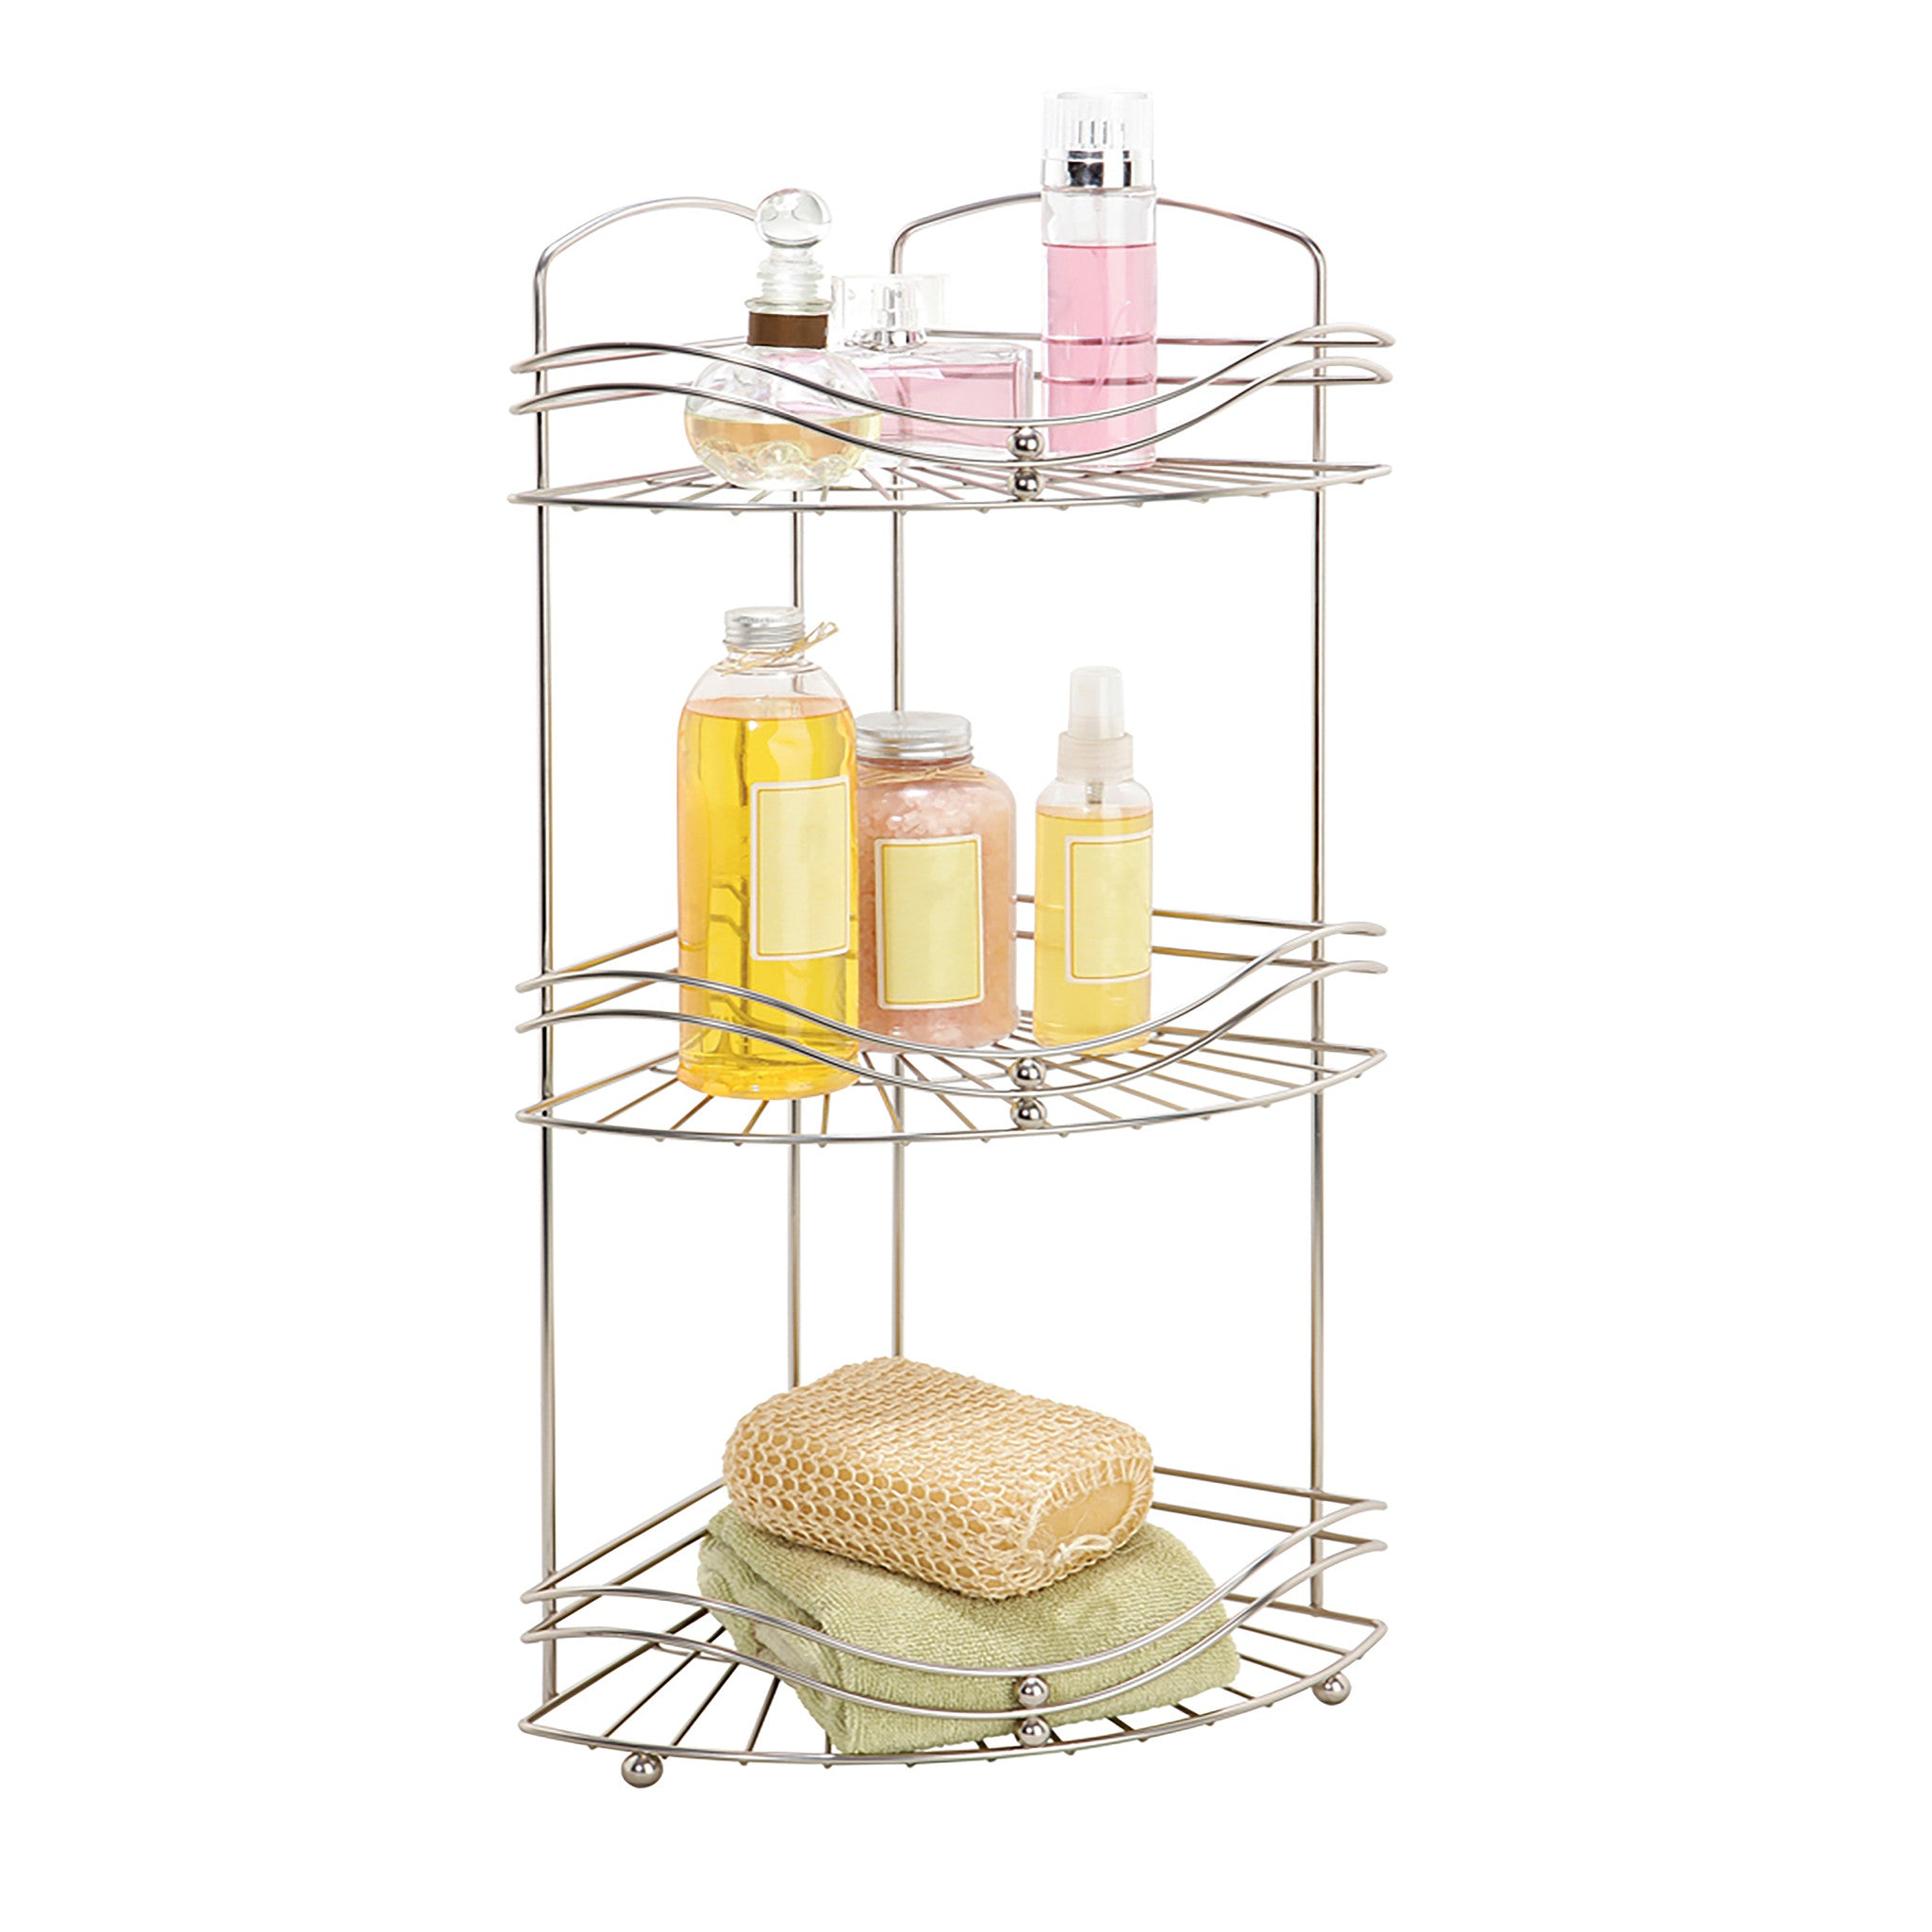 cabinet bathrooms shelving shelves shelf narrow tall glass standing tier wall corner storage white bathroom top floor gloss furniture mounted